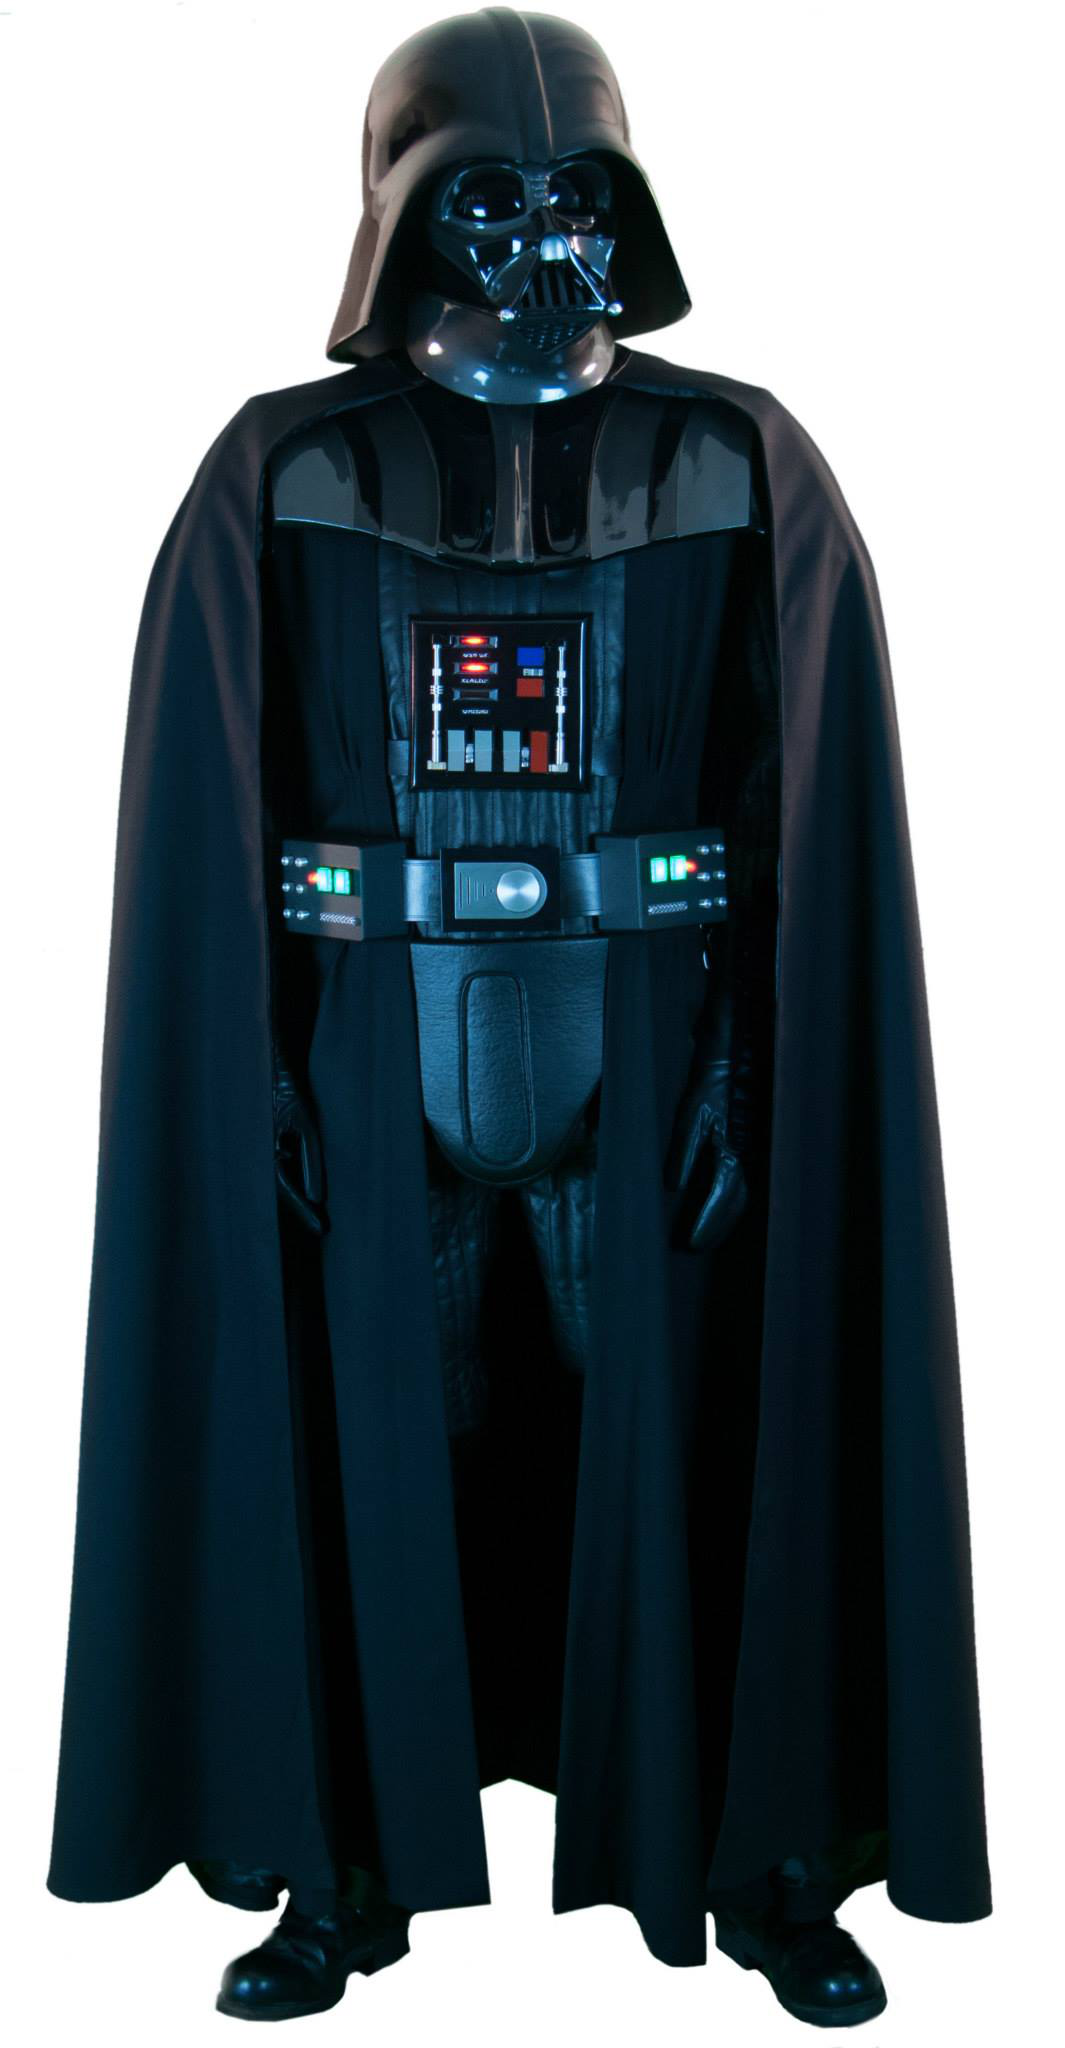 Darth Vader's armor | Wookieepedia | FANDOM powered by Wikia